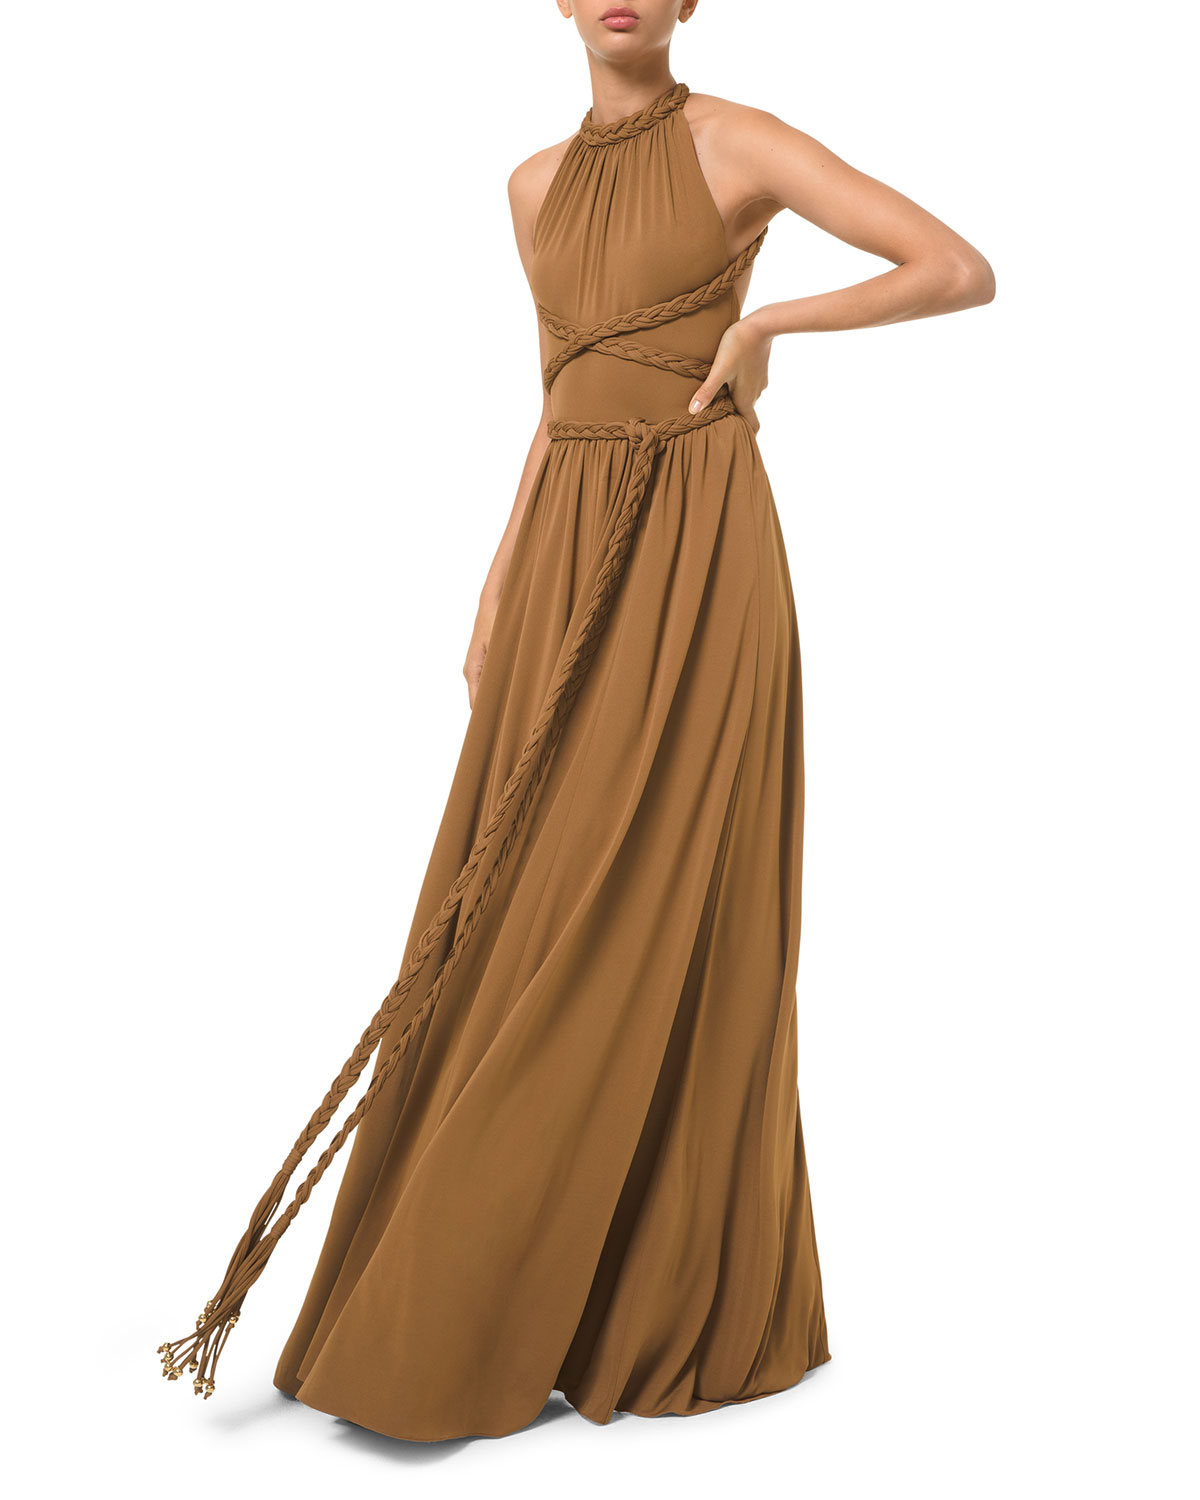 Michael Kors BRAIDED A-LINE HALTER DRESS